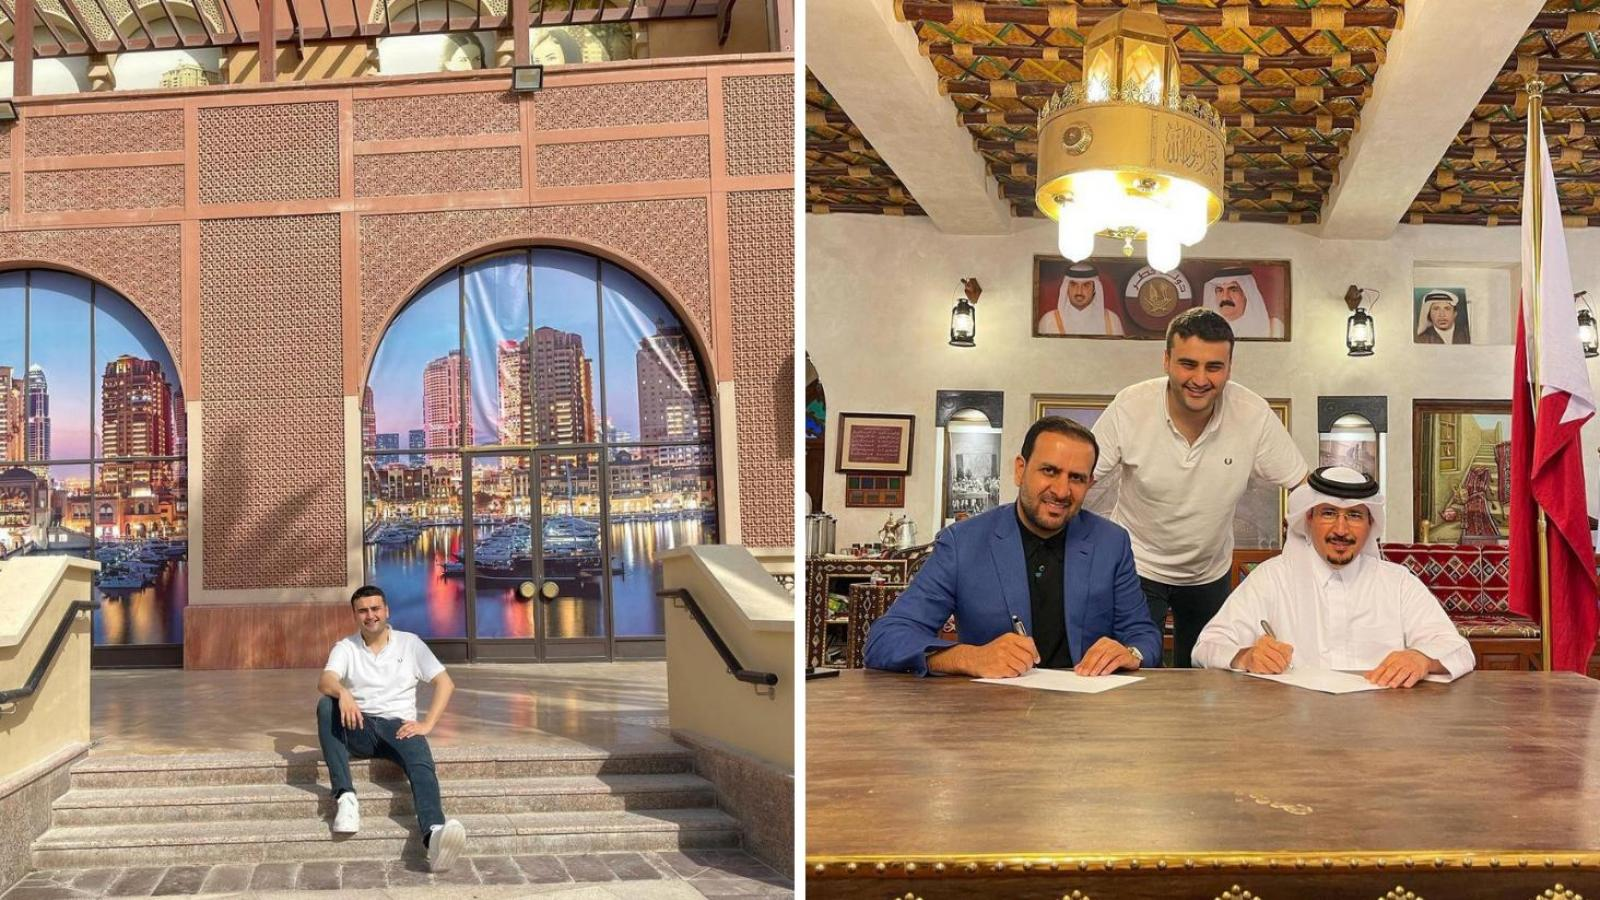 CZNBurak to open restaurant in Qatar